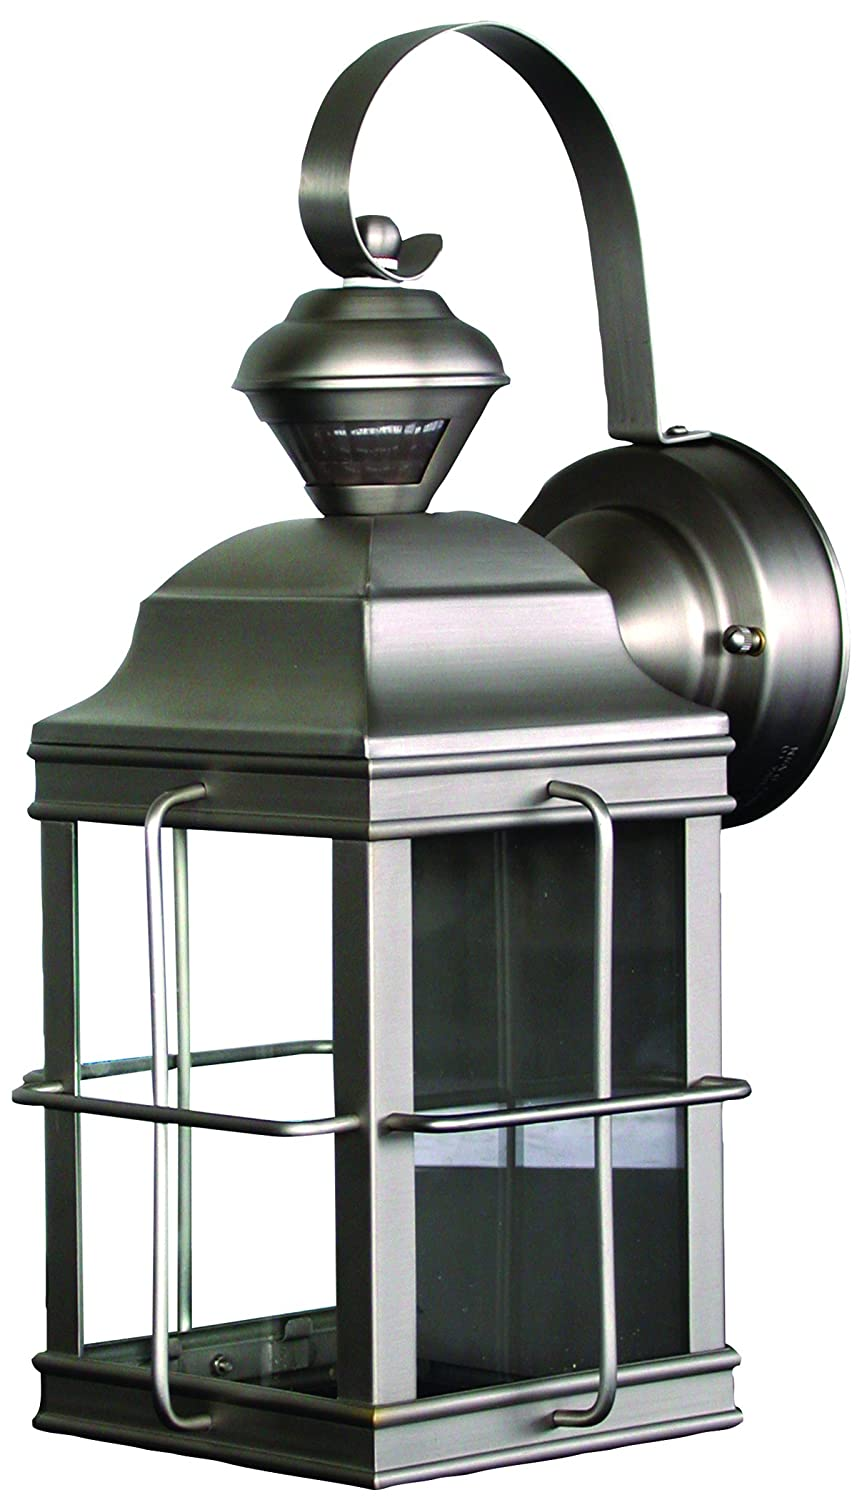 Heath zenith hz 4144 nb motion sensing 4 sided new england style heath zenith hz 4144 nb motion sensing 4 sided new england style lantern brushed nickel outdoor lighting amazon aloadofball Image collections